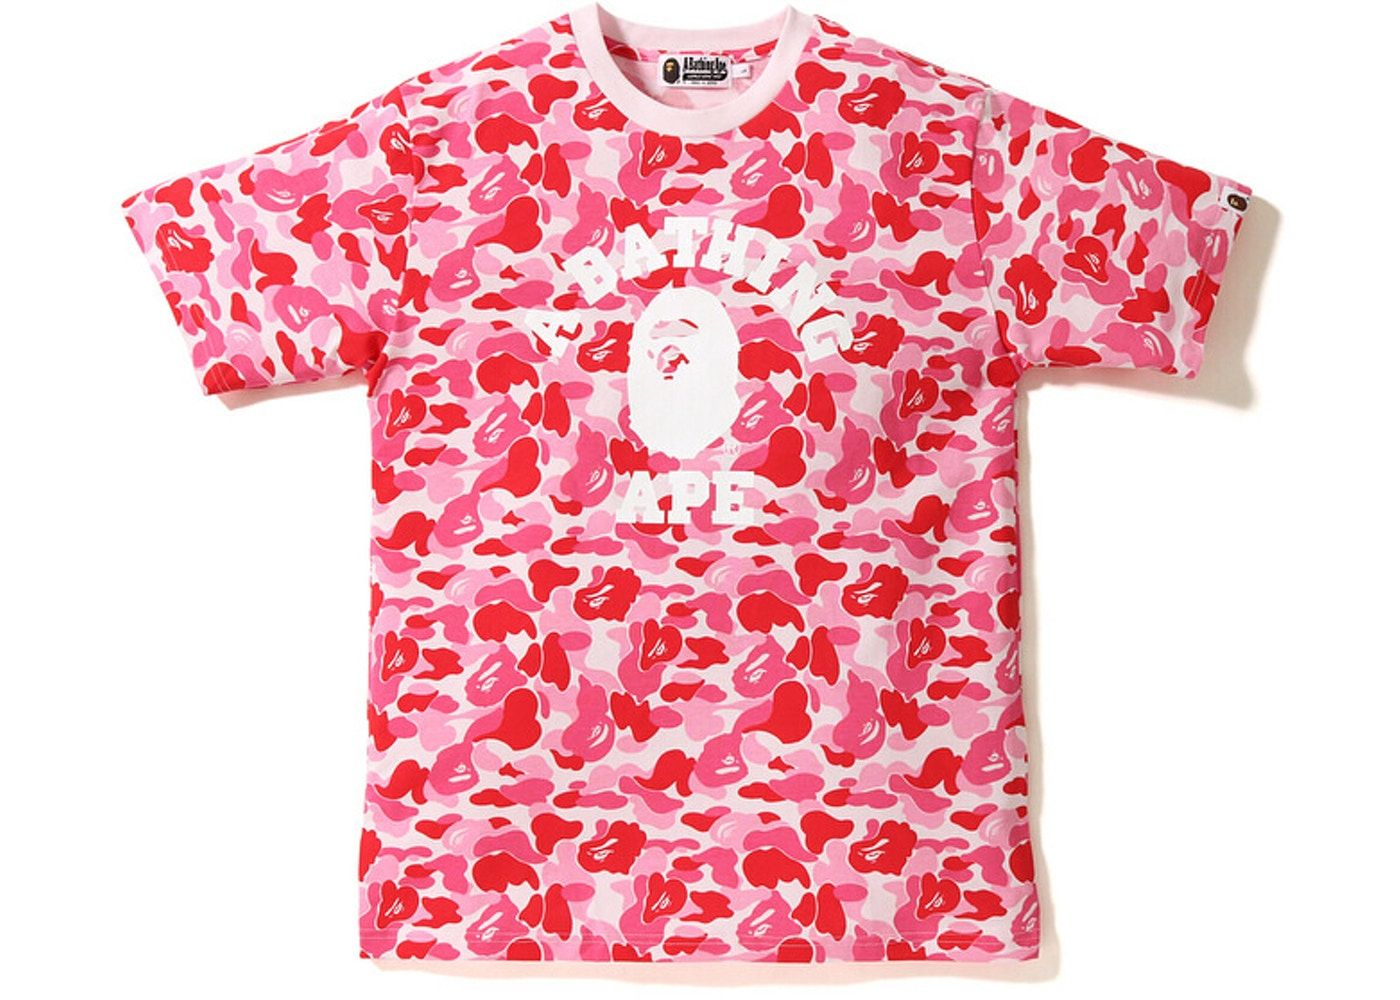 b9c85aa1 Check out the Bape ABC College Tee Pink available on StockX | shose ...